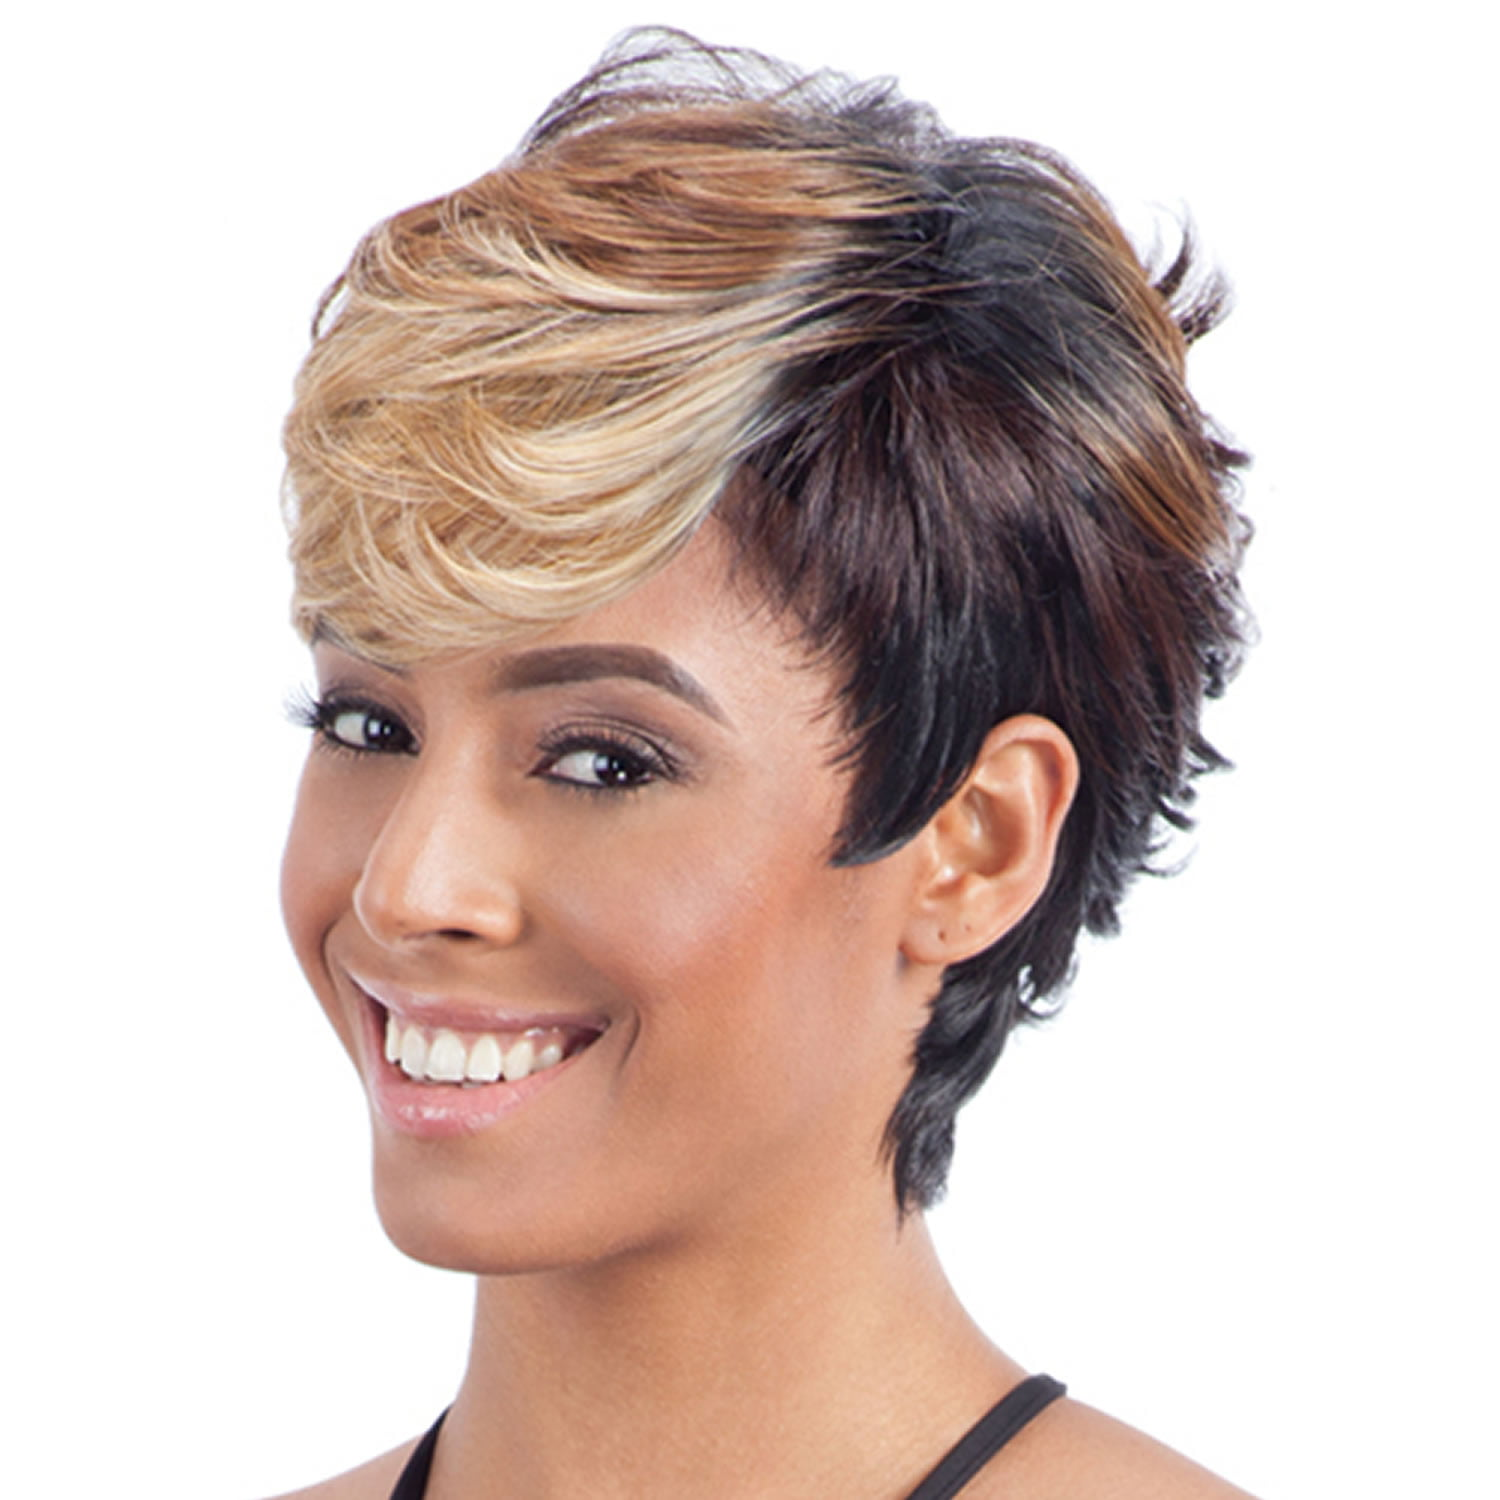 2018 Short Haircuts for Black Women - 57 Pixie Short Black ...